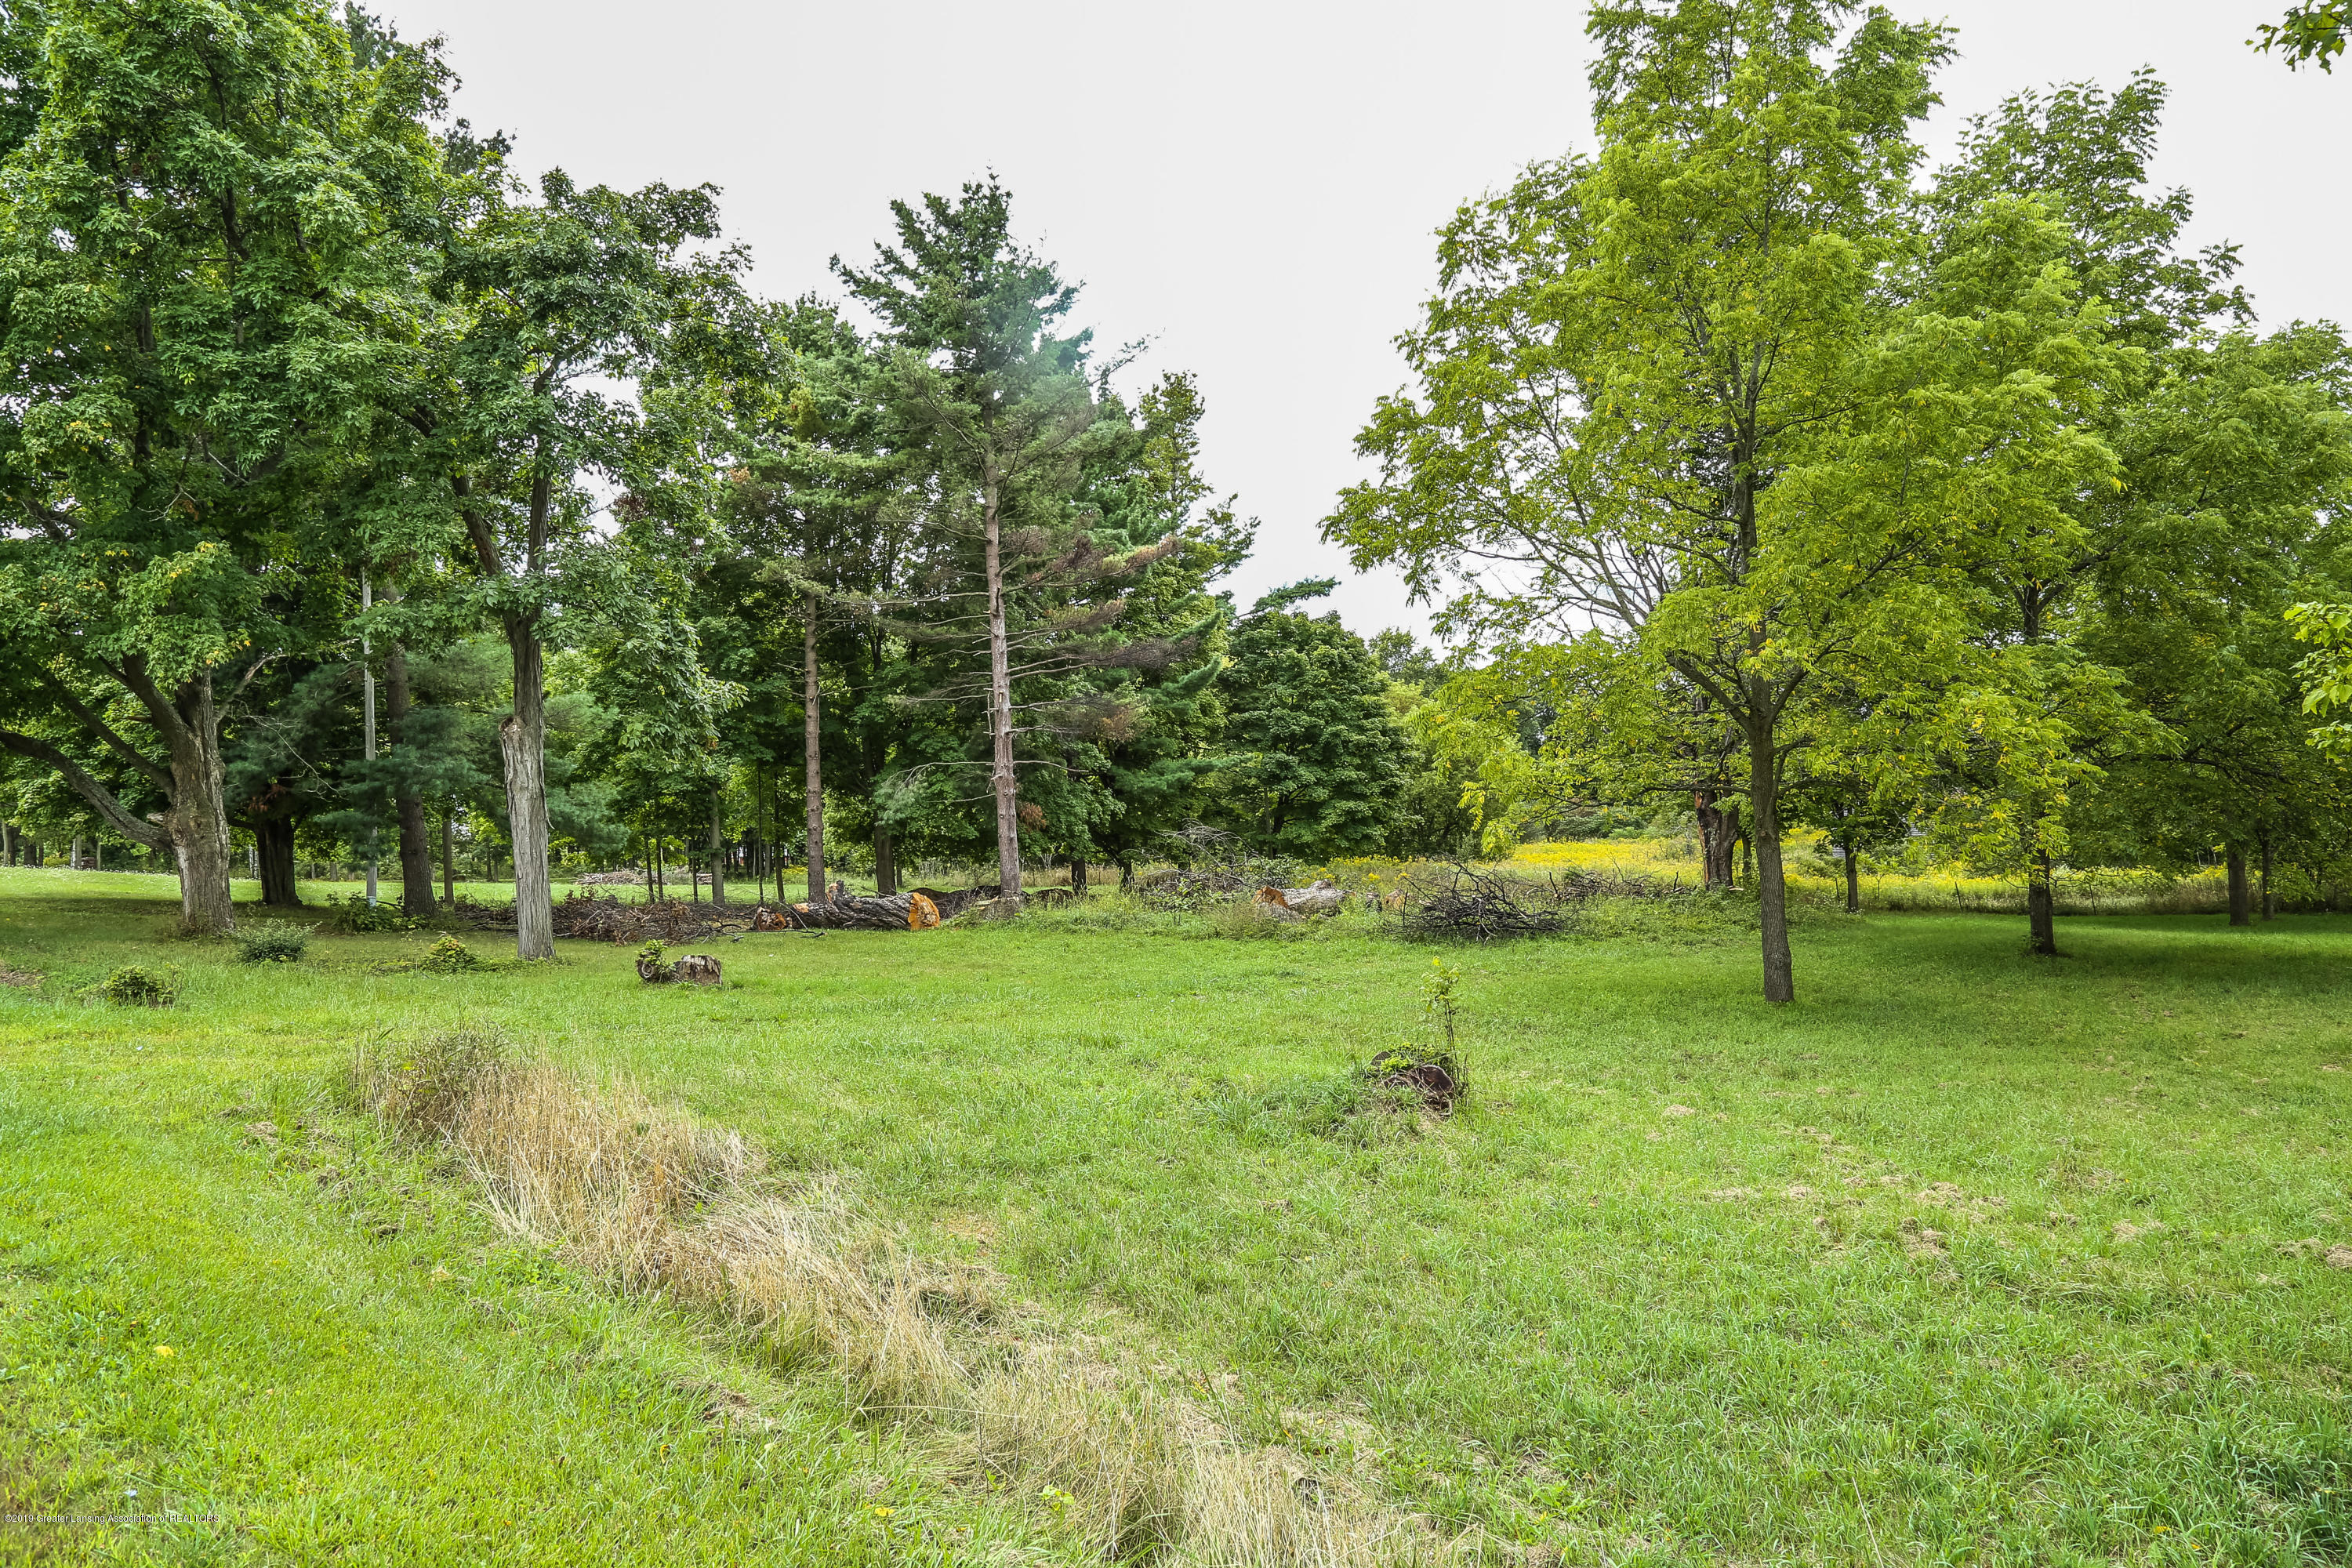 802 S Waverly Rd - Vacant Land - 1